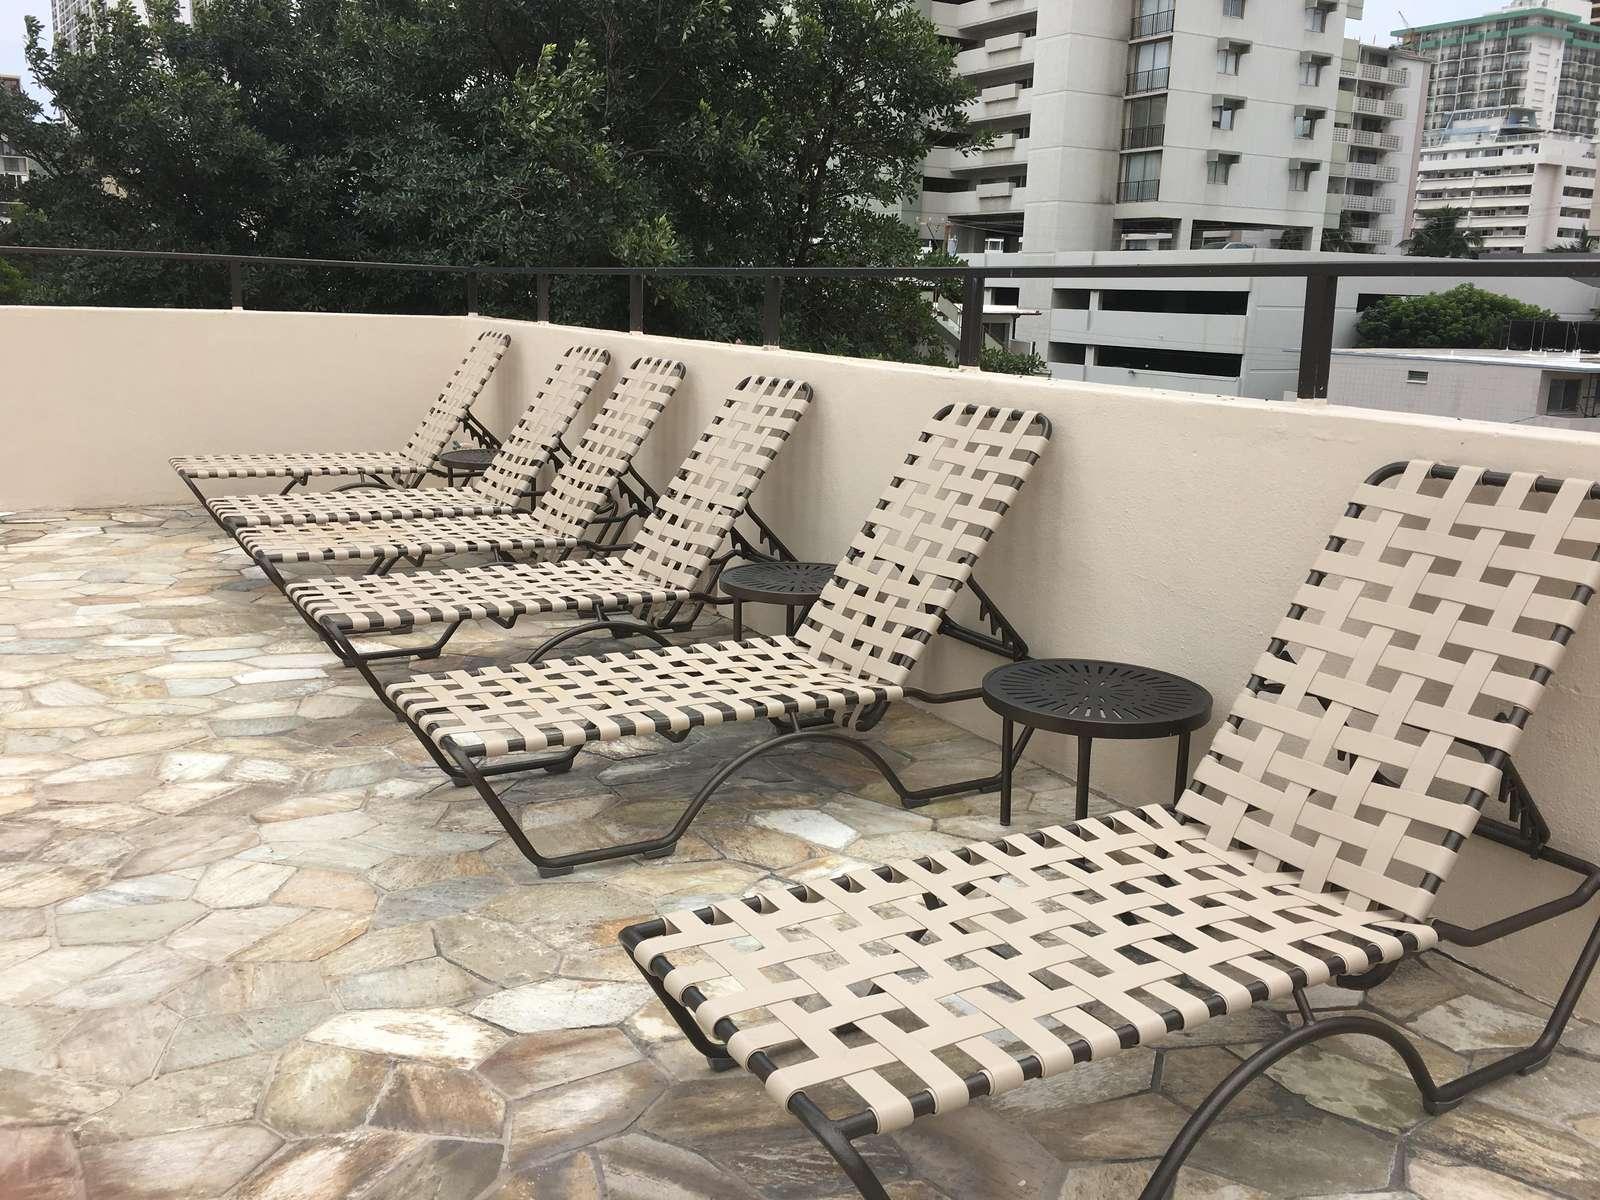 Ample sun loungers around the pool.